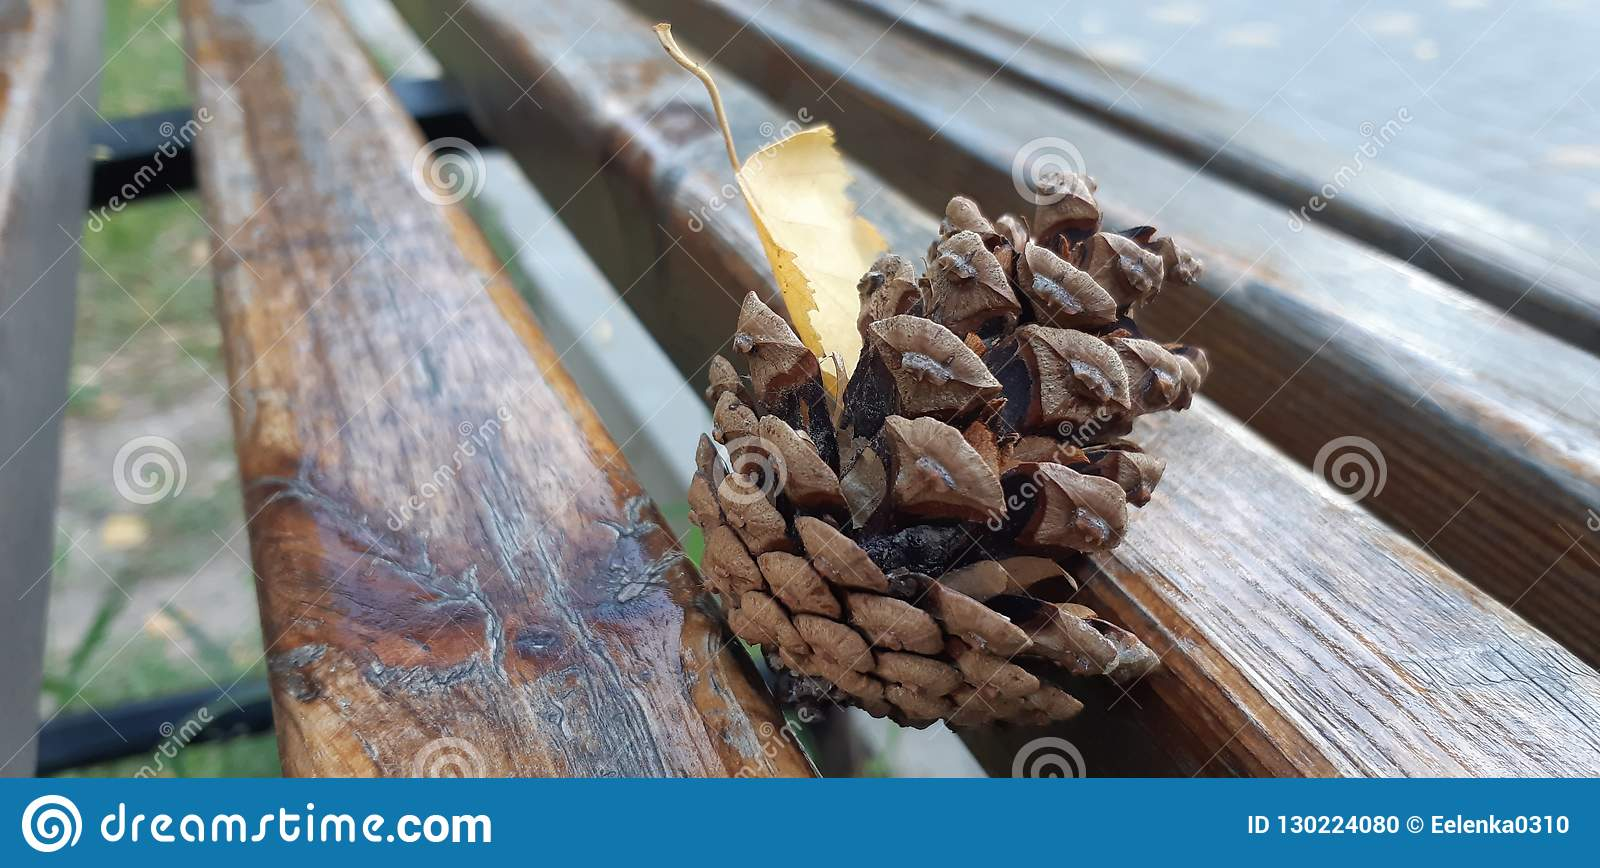 Pine Bumps Lying On A Wooden Bench Stock Photo - Image of